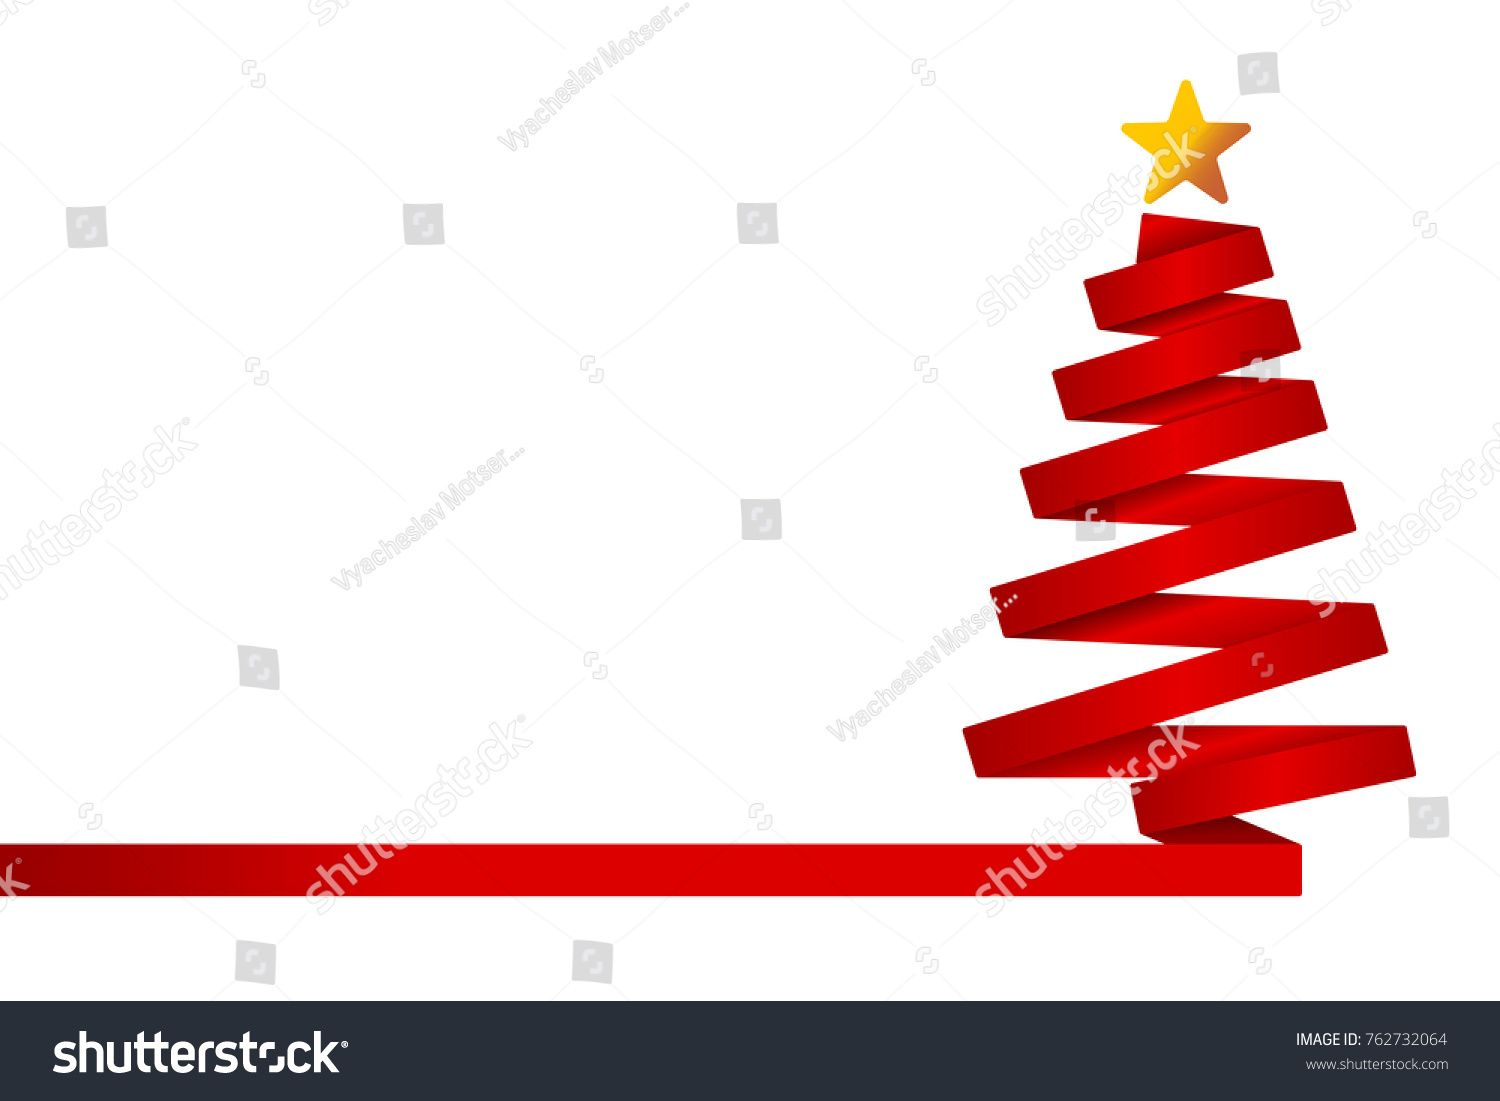 Red Christmas Tree Made From Ribbon Vector Illustration Tree Christmas Red Illustration Red Christmas Tree Red Christmas Christmas Tree